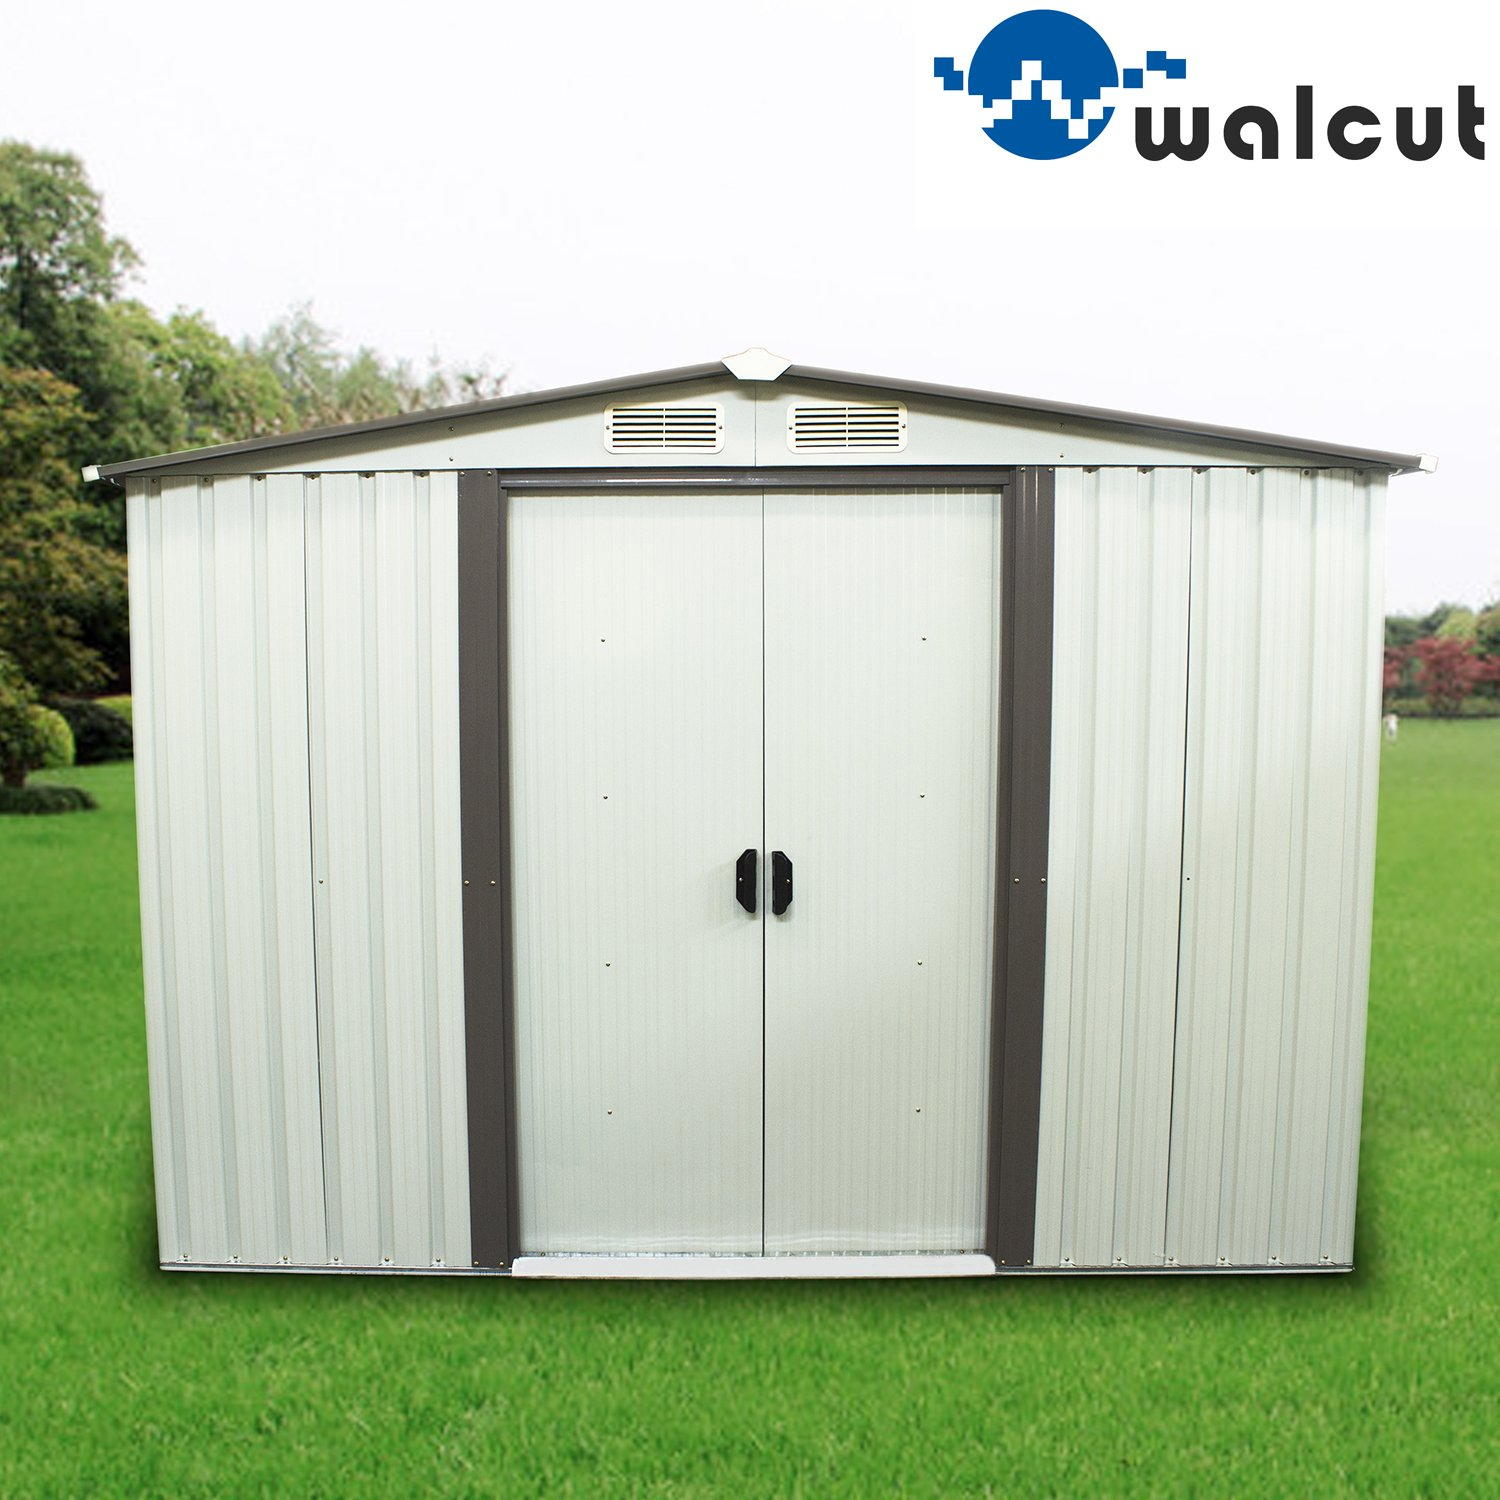 Ustl Garden Shed without床 8ft X 6ft USTL1009 B016JQRDPI